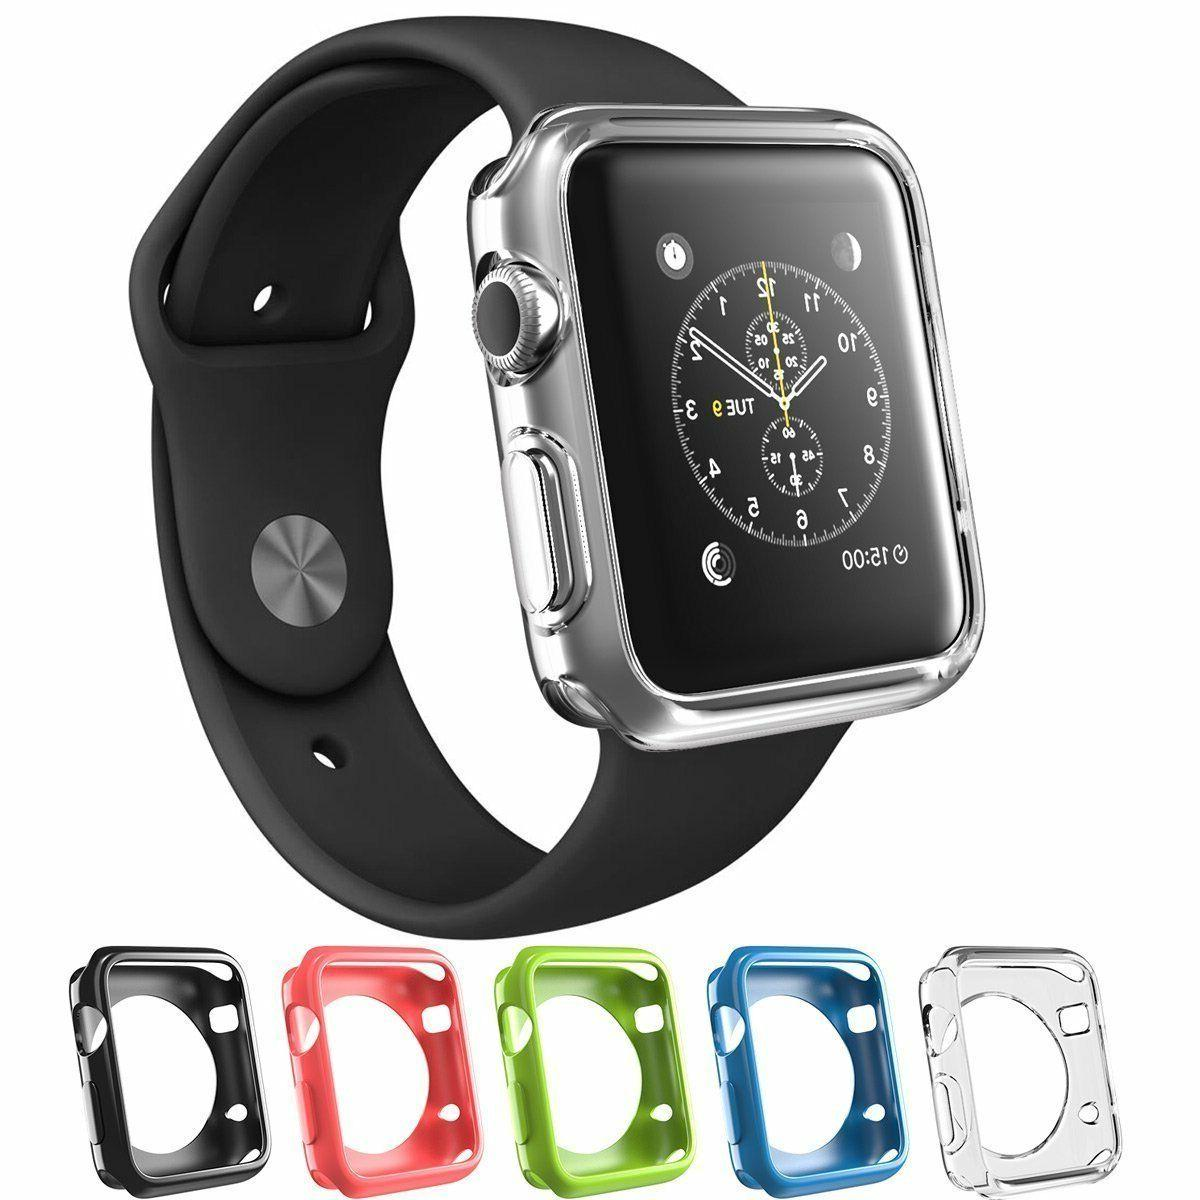 Apple Watch 2 Case i-Blason TPU Cases Color Combo Pack 42mm